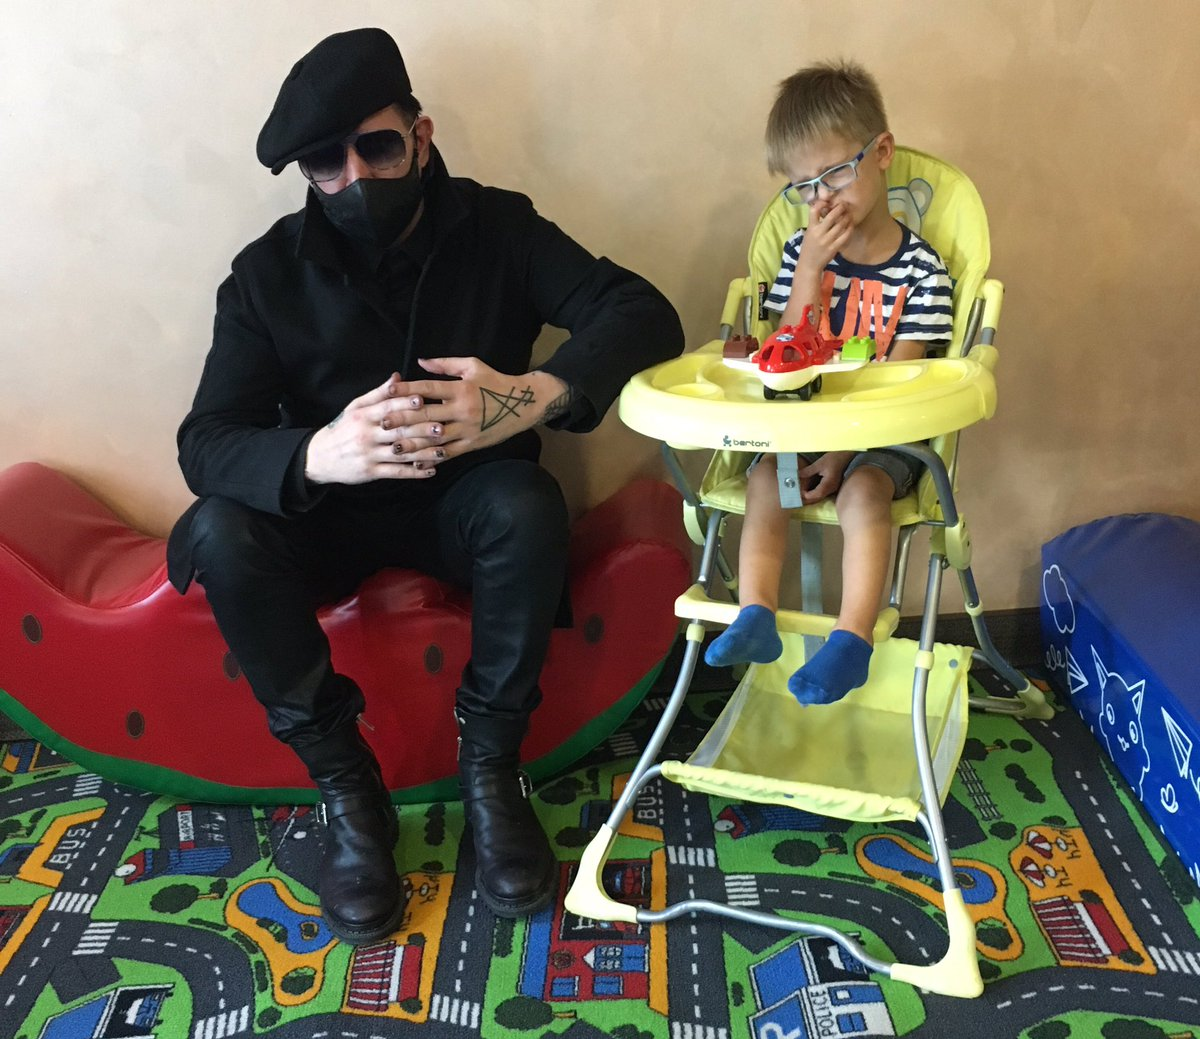 Marilyn Manson and the scared kids https://t.co/KBiAvFahVX